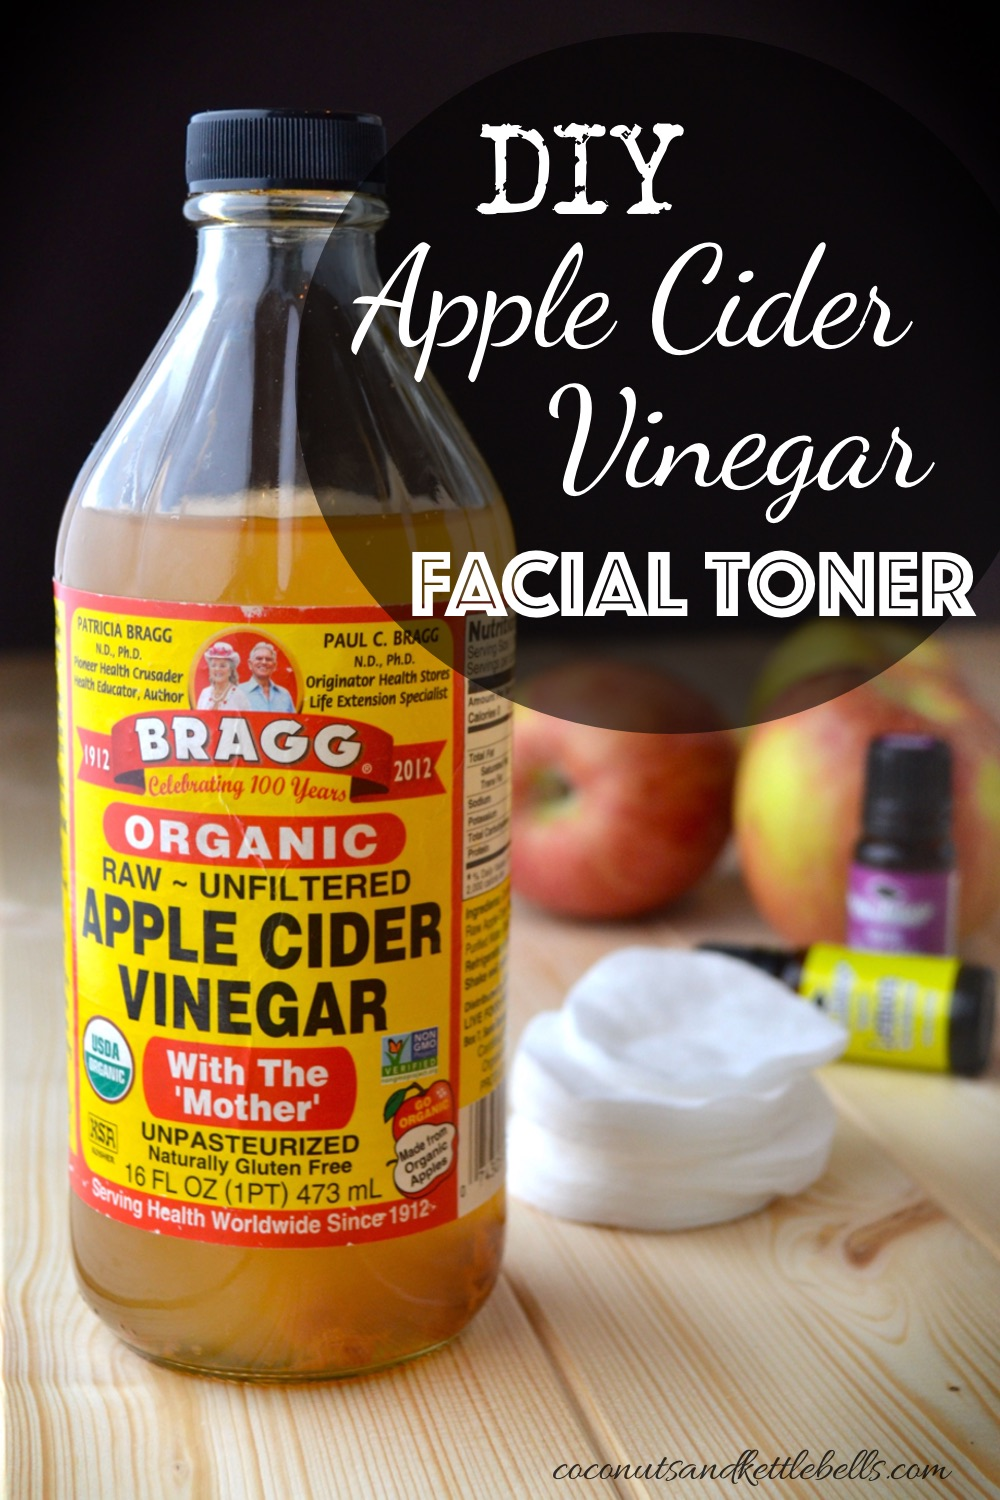 DIY Apple Cider Vinegar Facial Toner Coconuts Amp Kettlebells